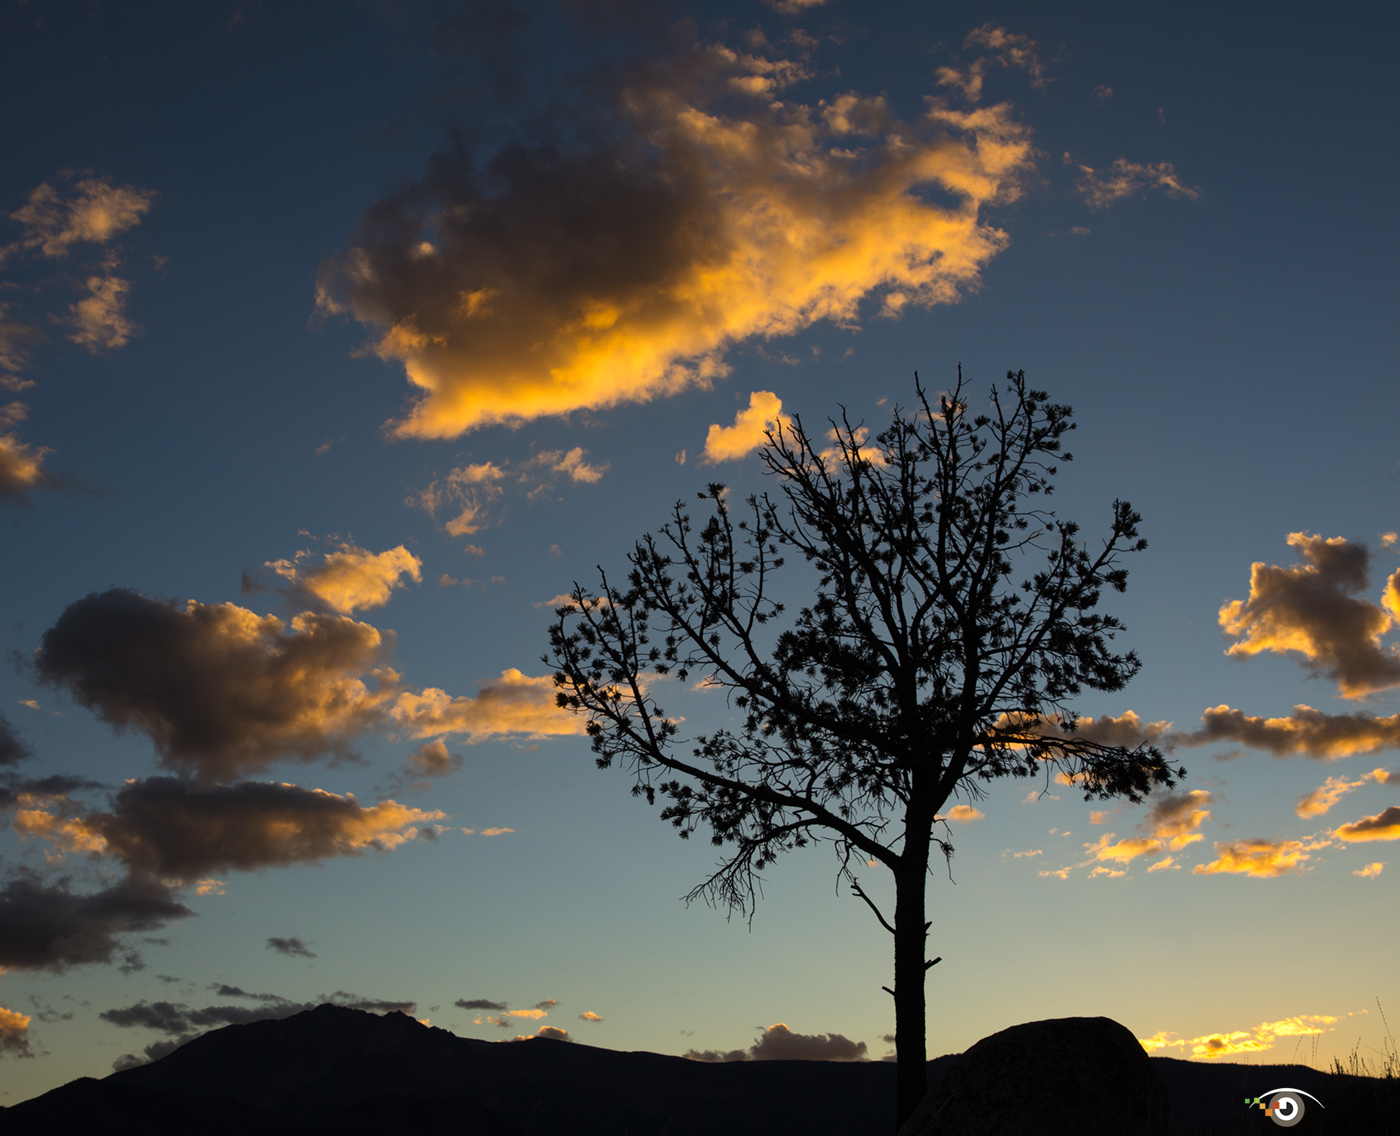 Sunset, photographed on our Yellowstone National Park photo workshop.